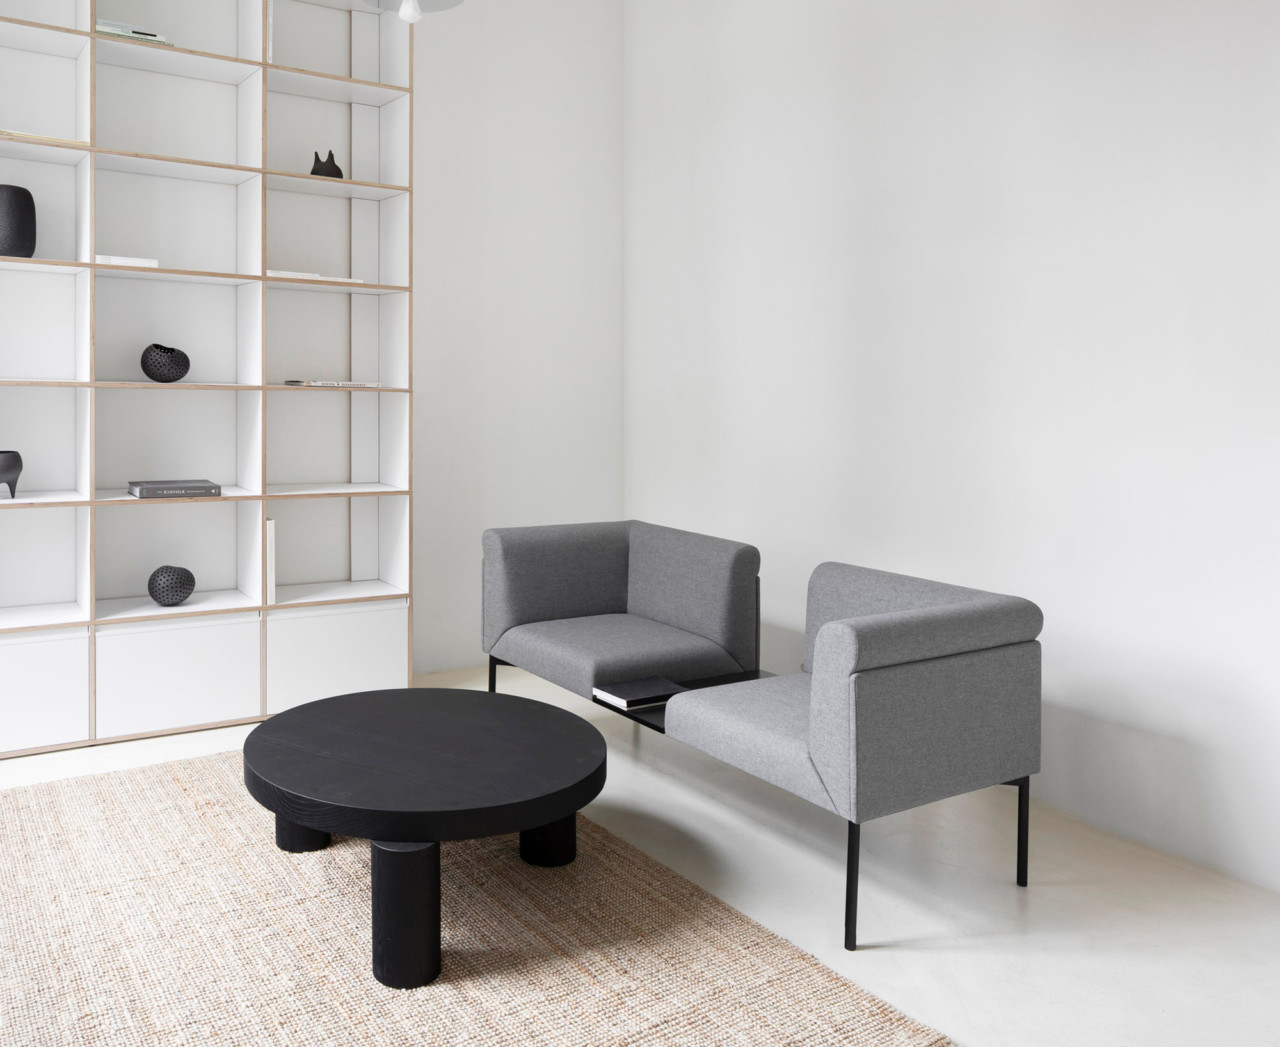 A-Place K907 Is a Minimal Apartment in Warsaw by Thisispaper Studio